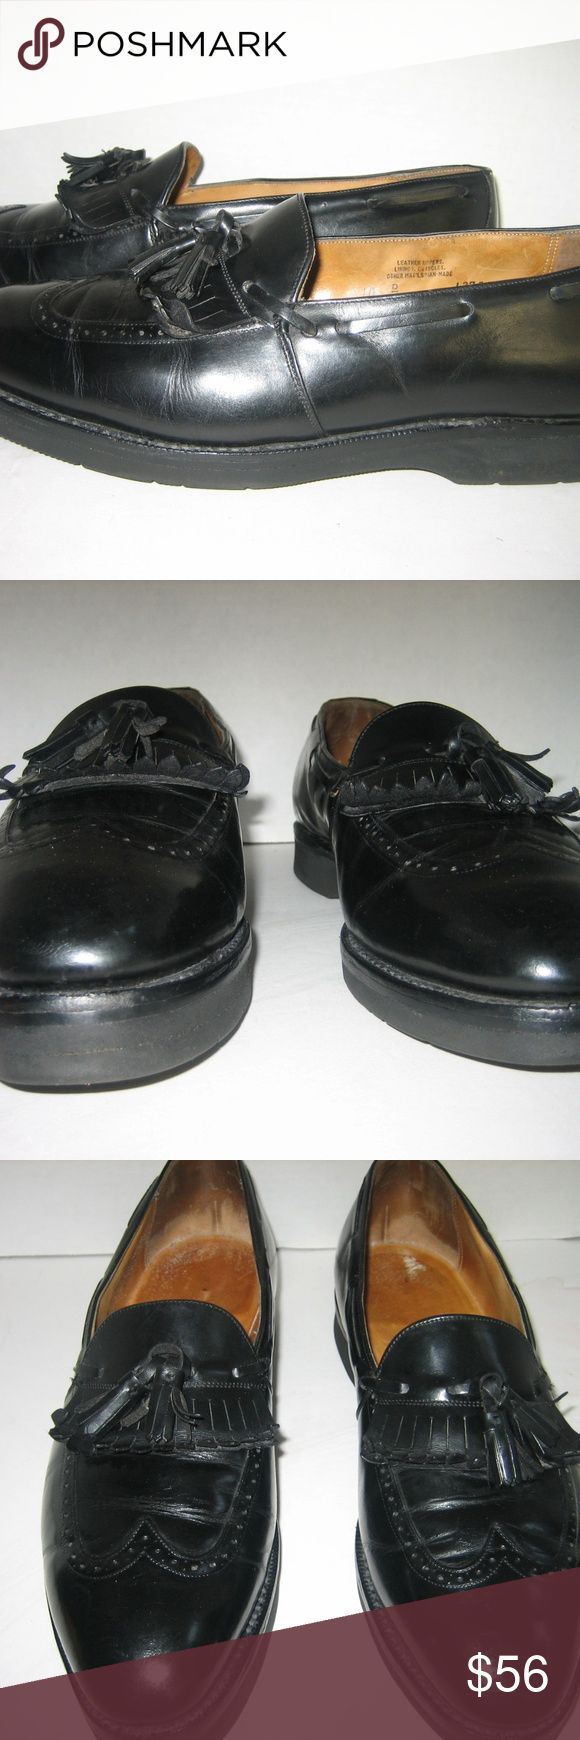 """Men's Black Leather Wing-tip Tassel Loafers, 10. D Black tassel and kiltie design with wing-tip. Easy slip-on with man-made """"Vibram"""" wedge heels. Leather uppers and leather linings. Neat interiors. No holes or tears. Maker brand name unknown.   Outer sole longest length 12.25"""". Widest width of outer sole 4"""".  Left shoe 1"""" heel. Right shoe heel 1.25"""".   Some minor upper leather and minor mid-sole scratches. Light outer sole walking wear. BRAND NAME ON   INSOLES, BUT NOT VISIBLE ENOUGH TO…"""